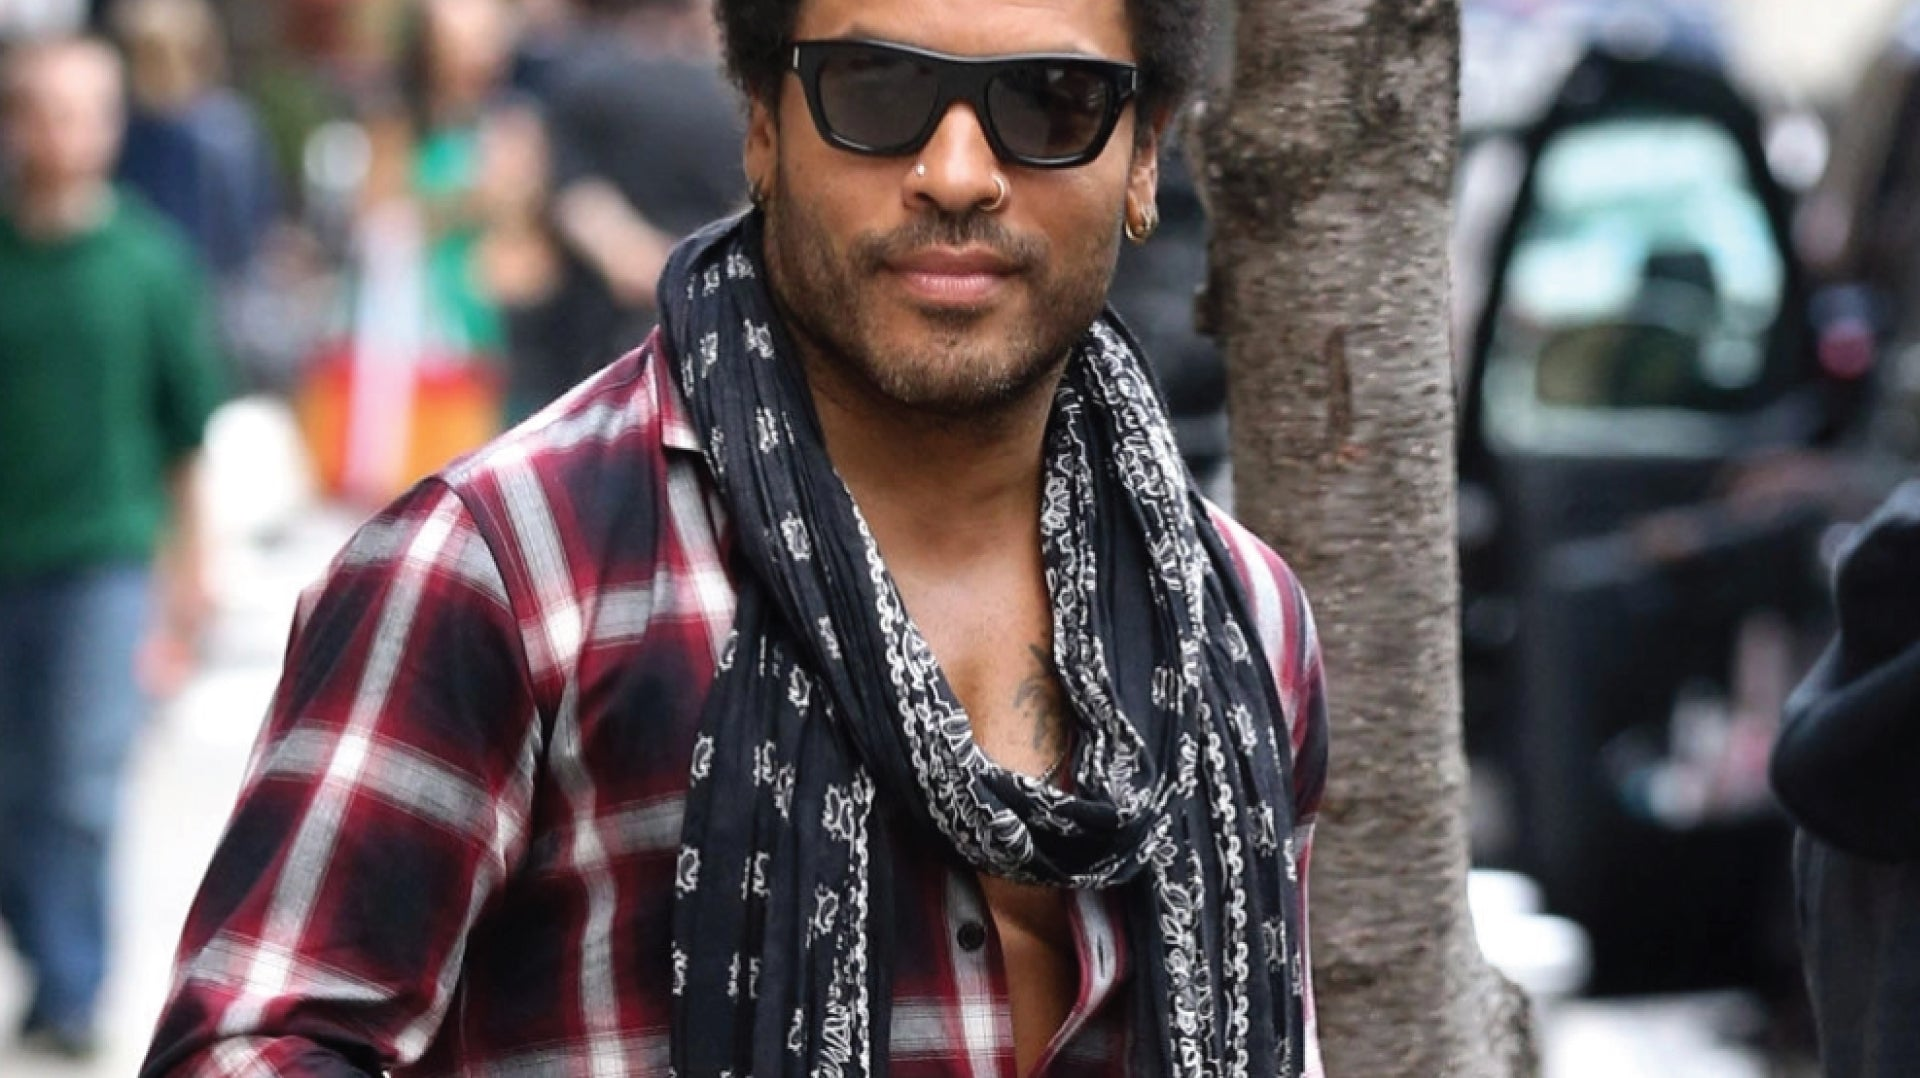 Lenny Kravitz in a red flannel